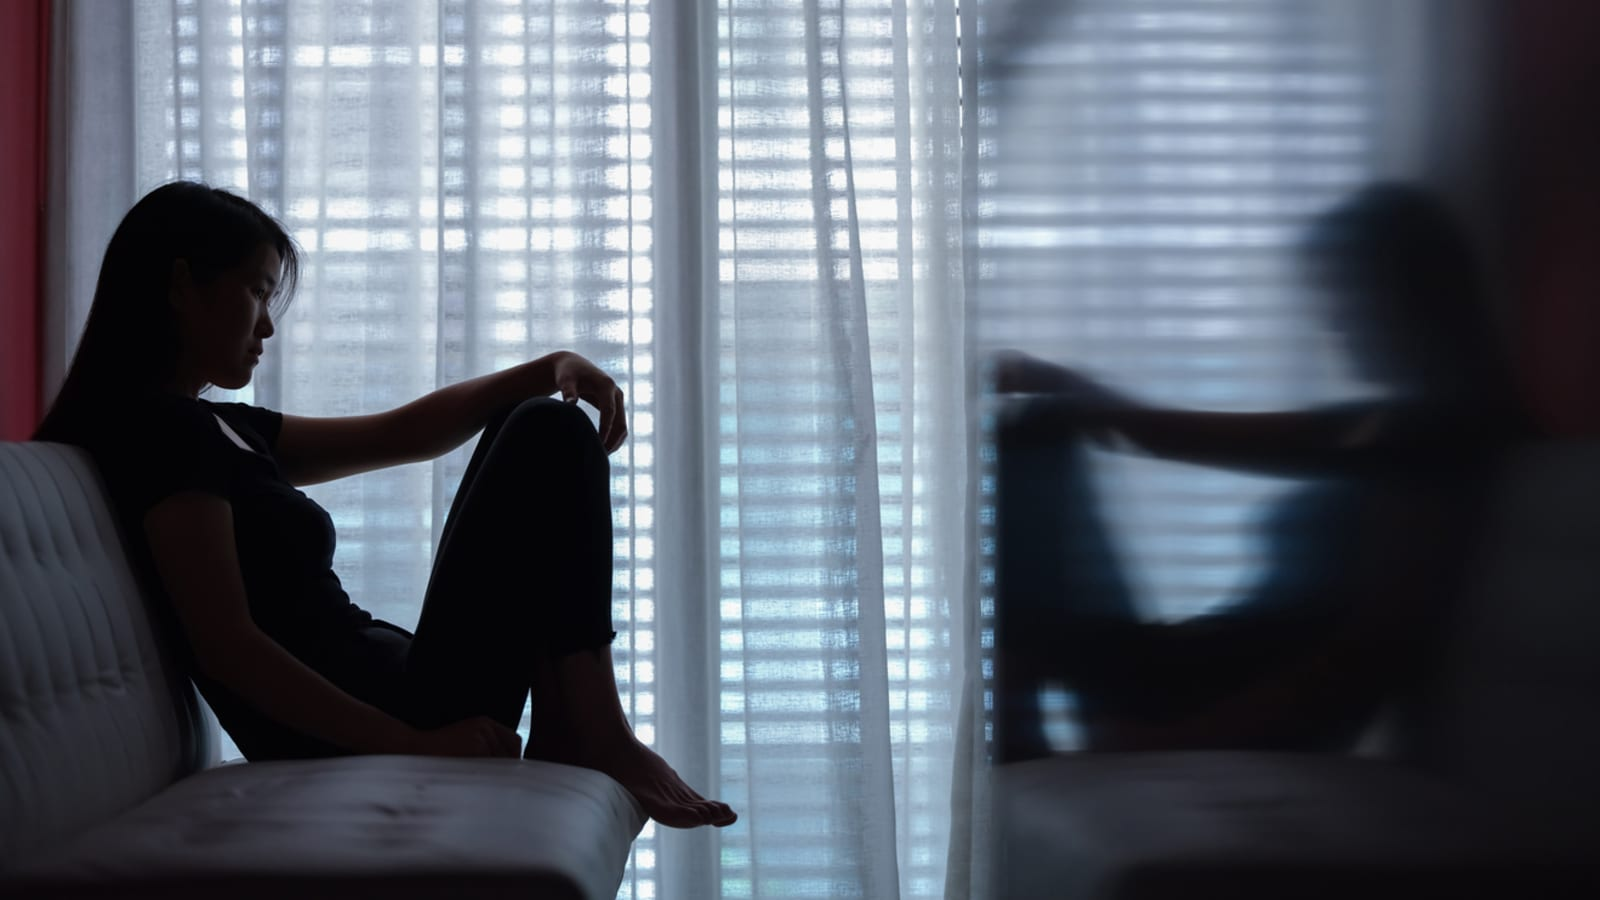 Nearly 60% of Singapore women have low sexual function, says KKH in new study